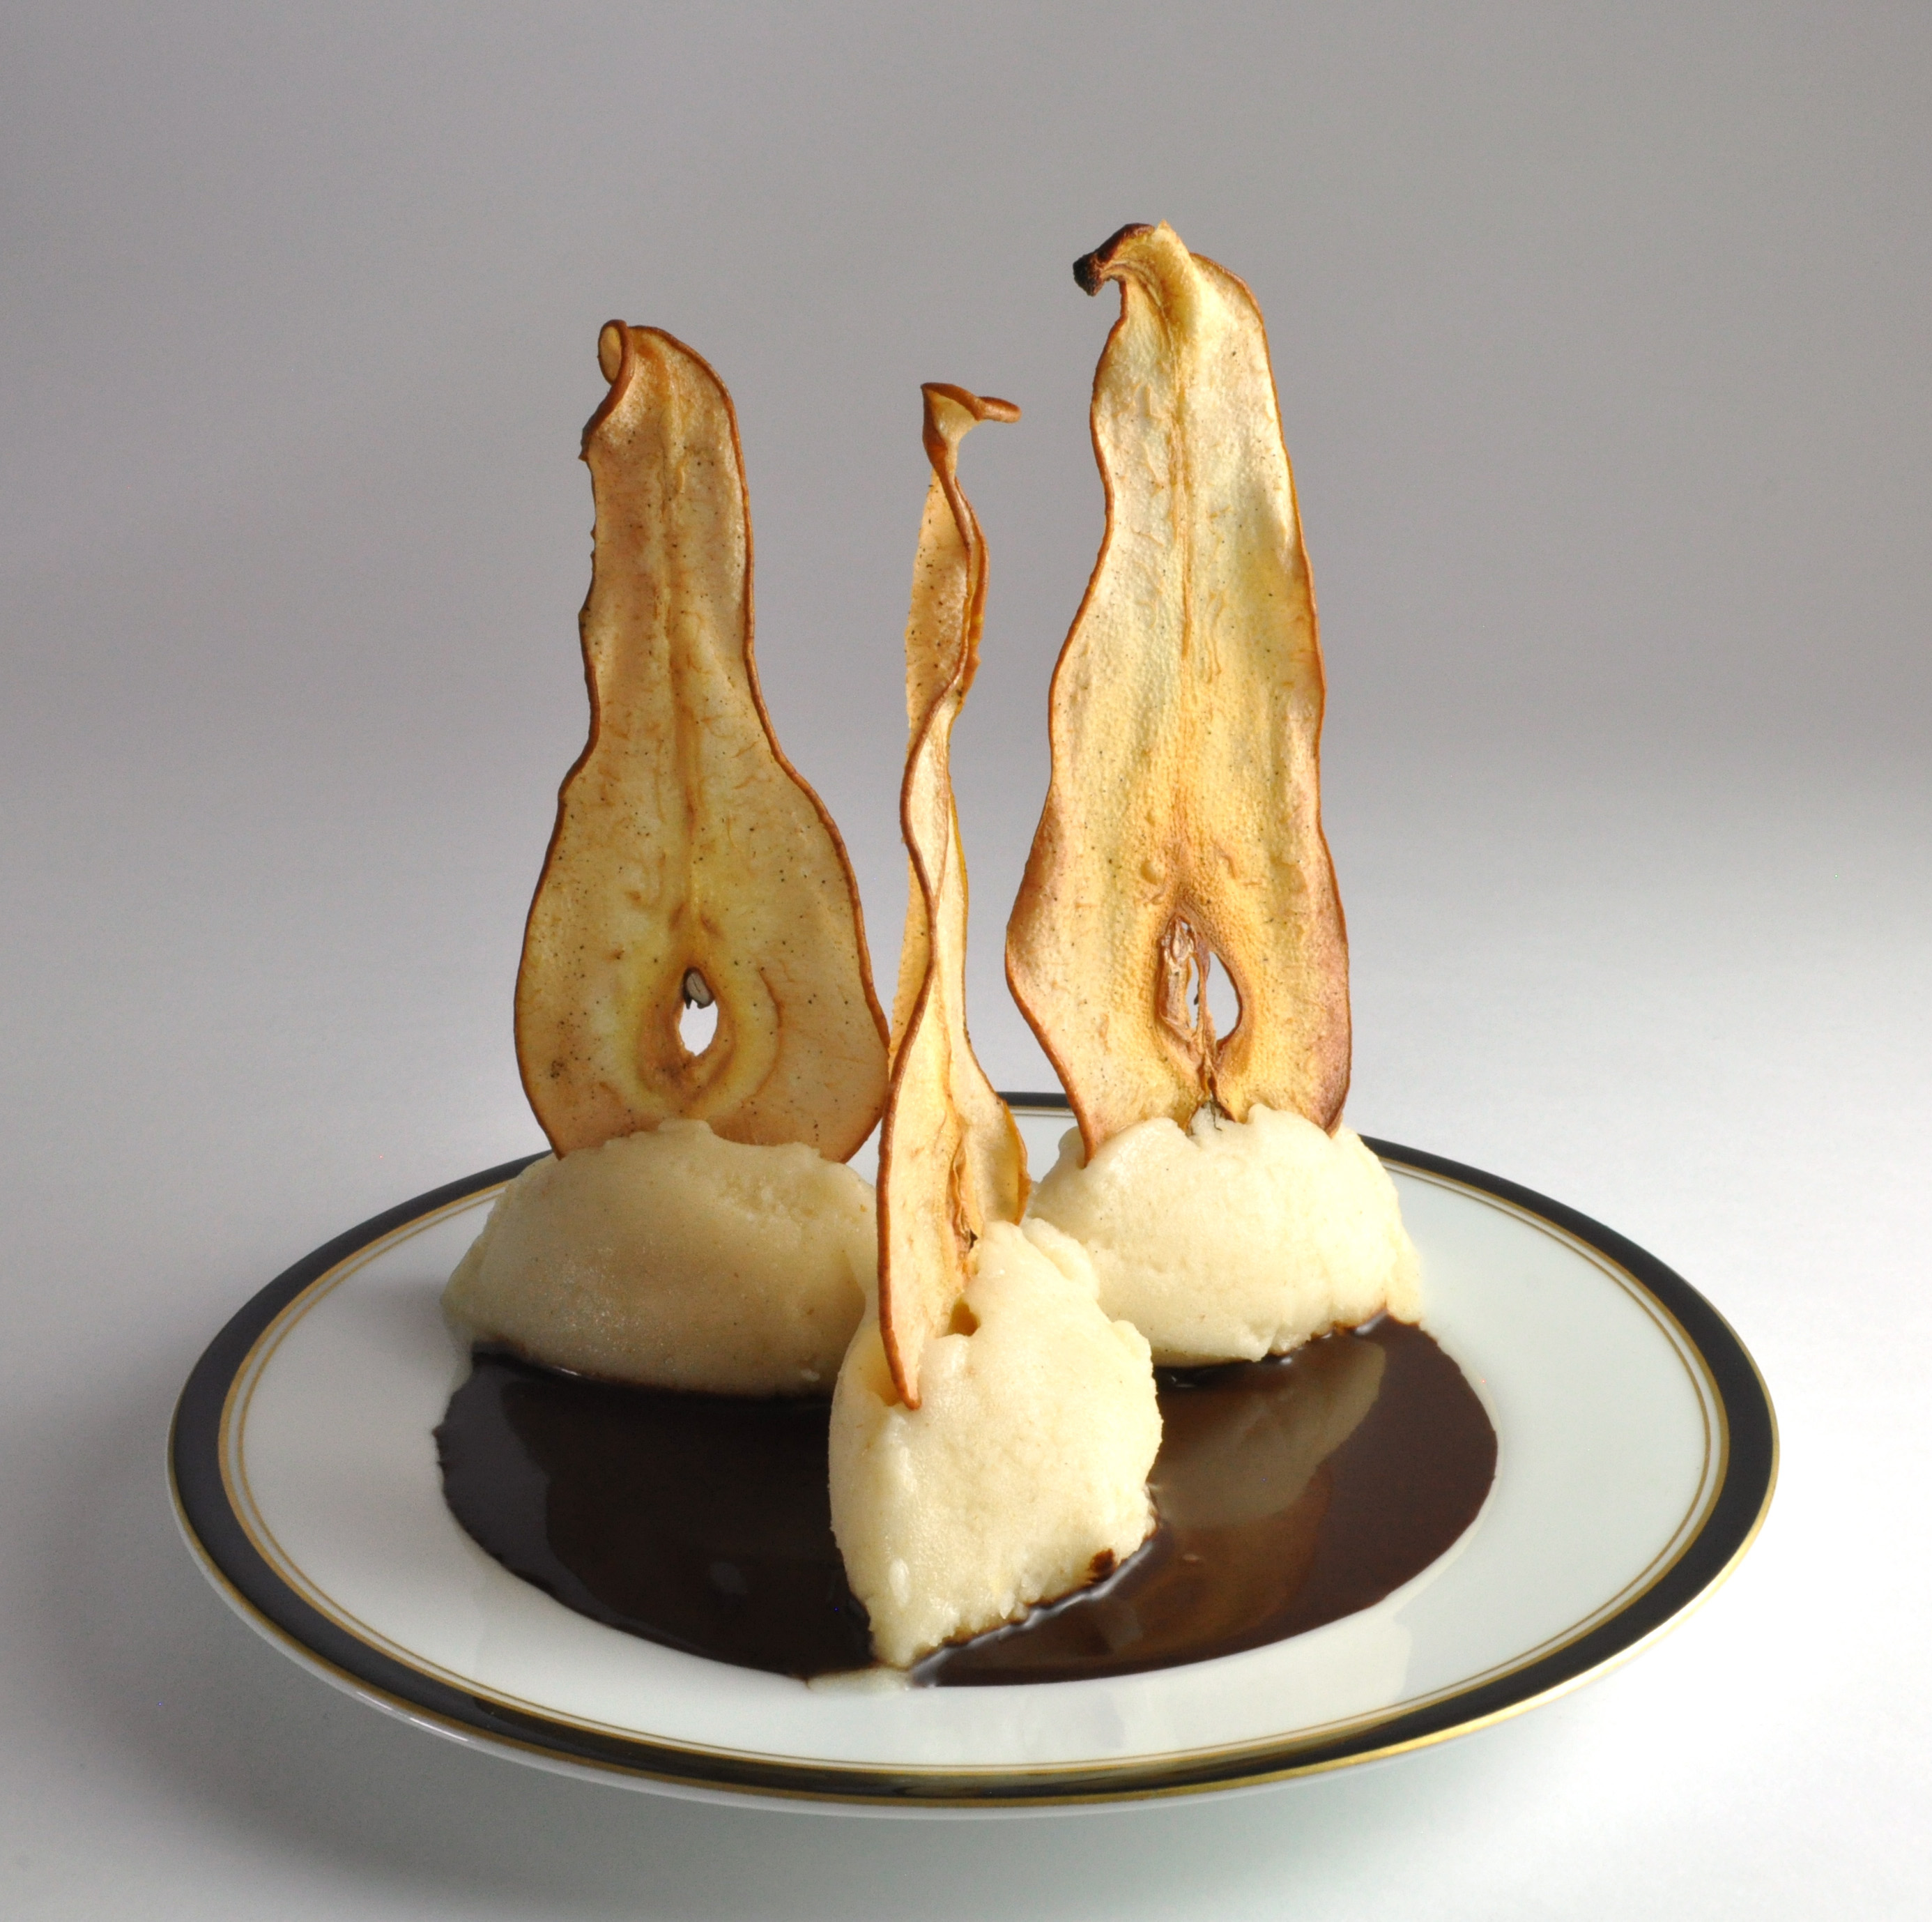 Alan Roettinger – Pear Sorbet with Chocolate Sauce and Pear Chips